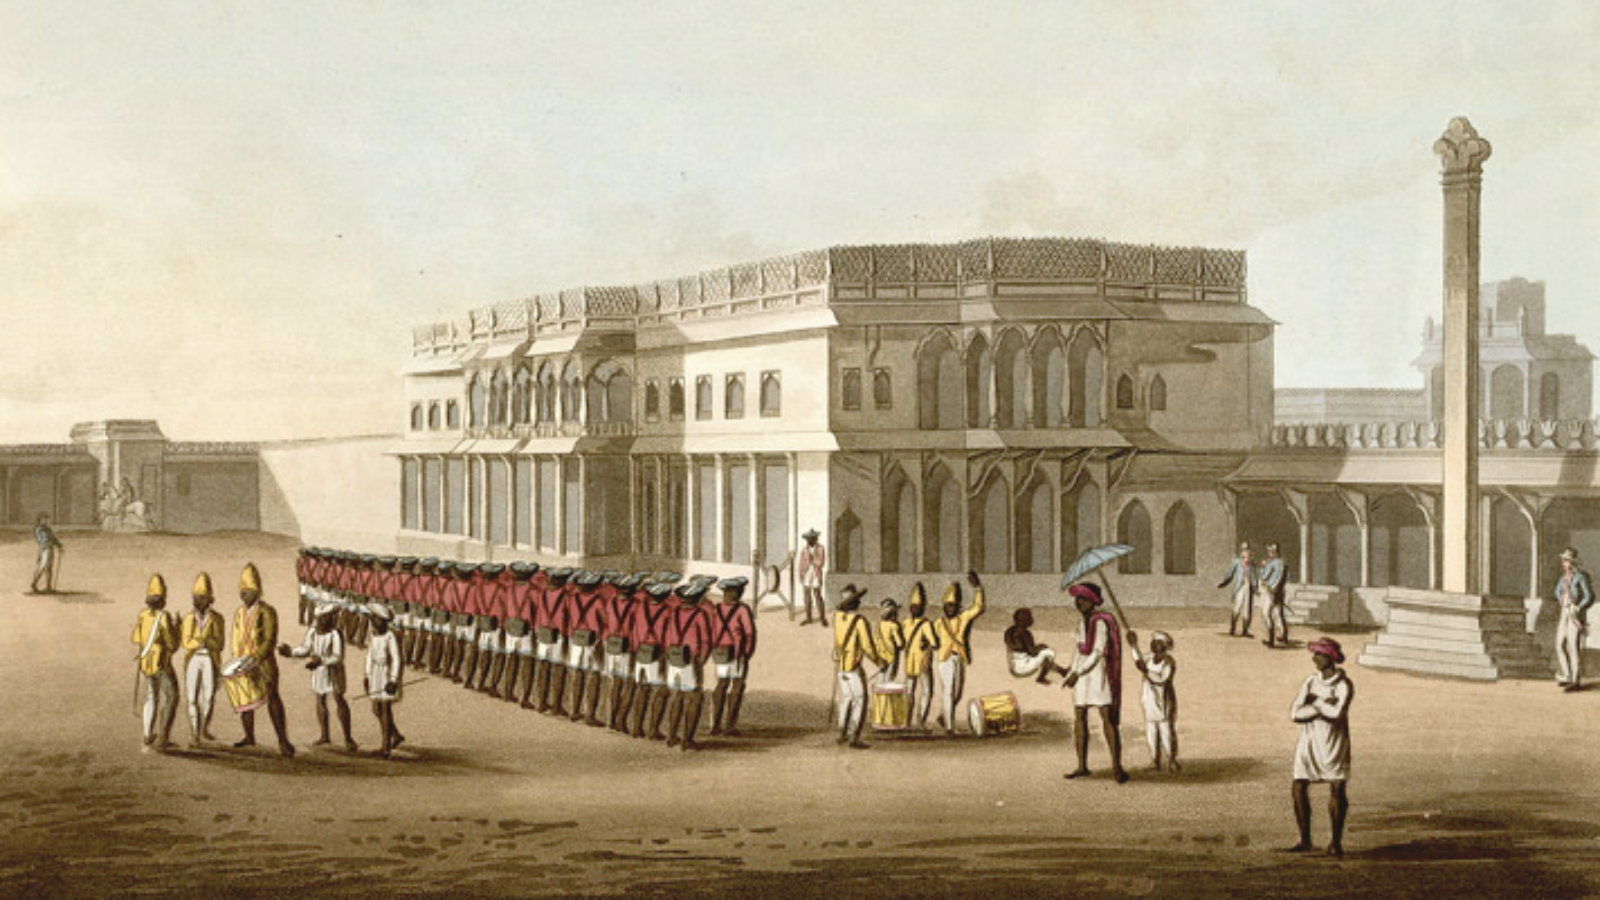 An East India Company settlement in Kolkata in the 19th century.